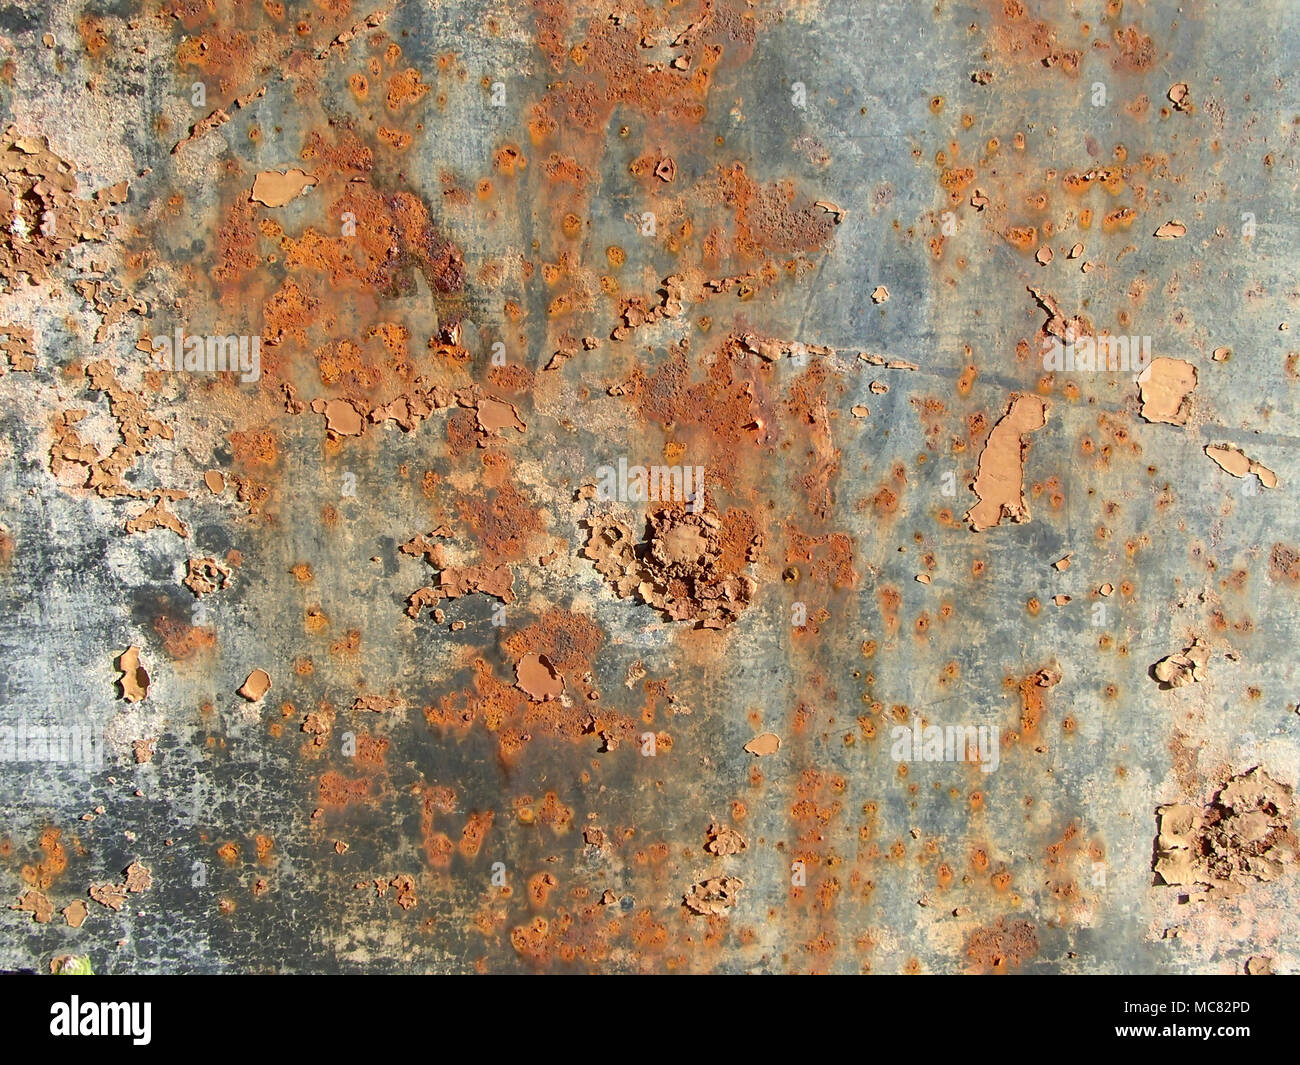 Abstract Rusty and PeelingTextured Background - Stock Image